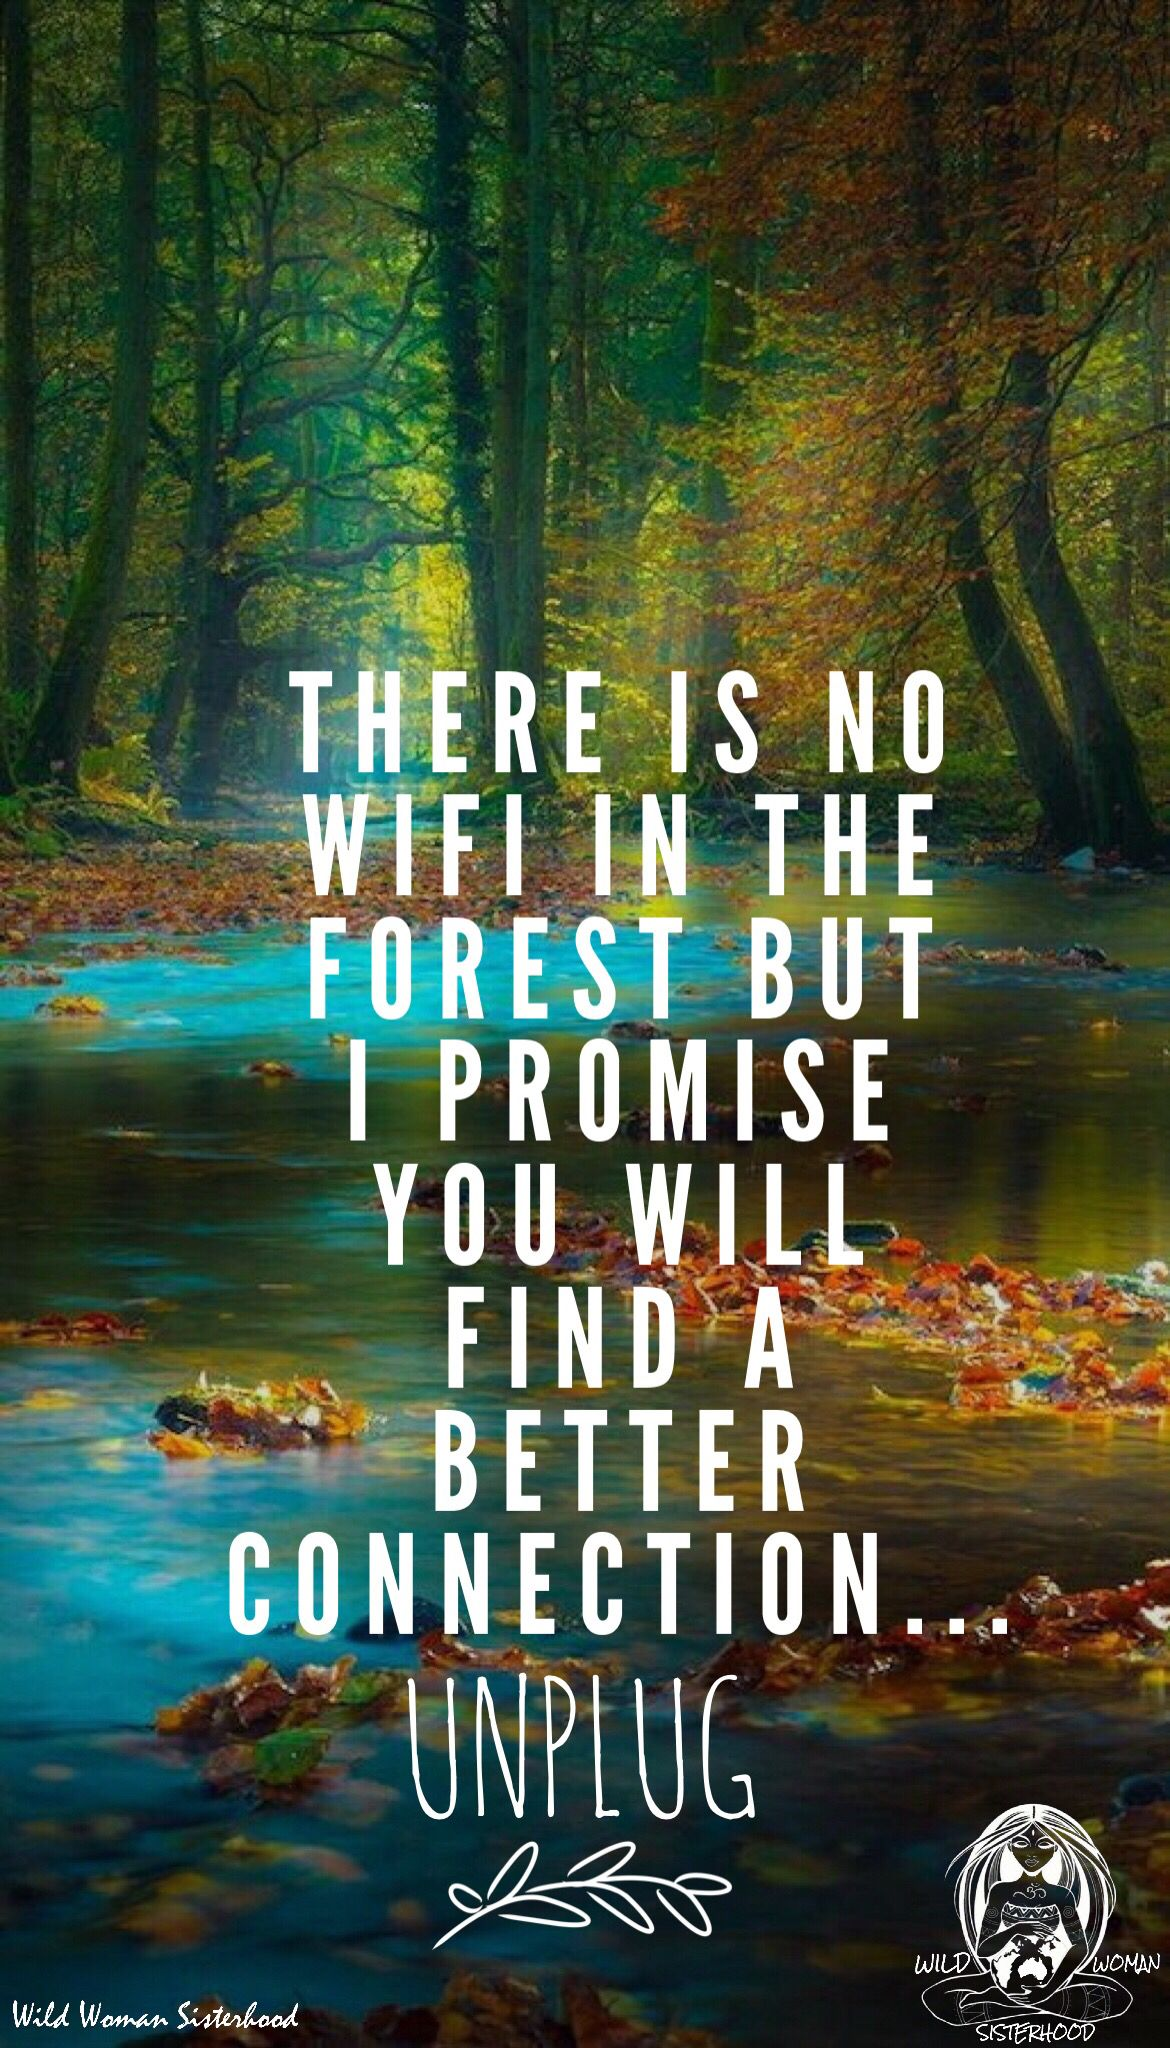 finding a connection with nature Research suggests that contact with nature can be beneficial, for example leading to improvements in mood, cognition, and health a distinct but related idea is the personality construct of subjective nature connectedness, a stable individual difference in cognitive, affective, and experiential connection with the natural environment.